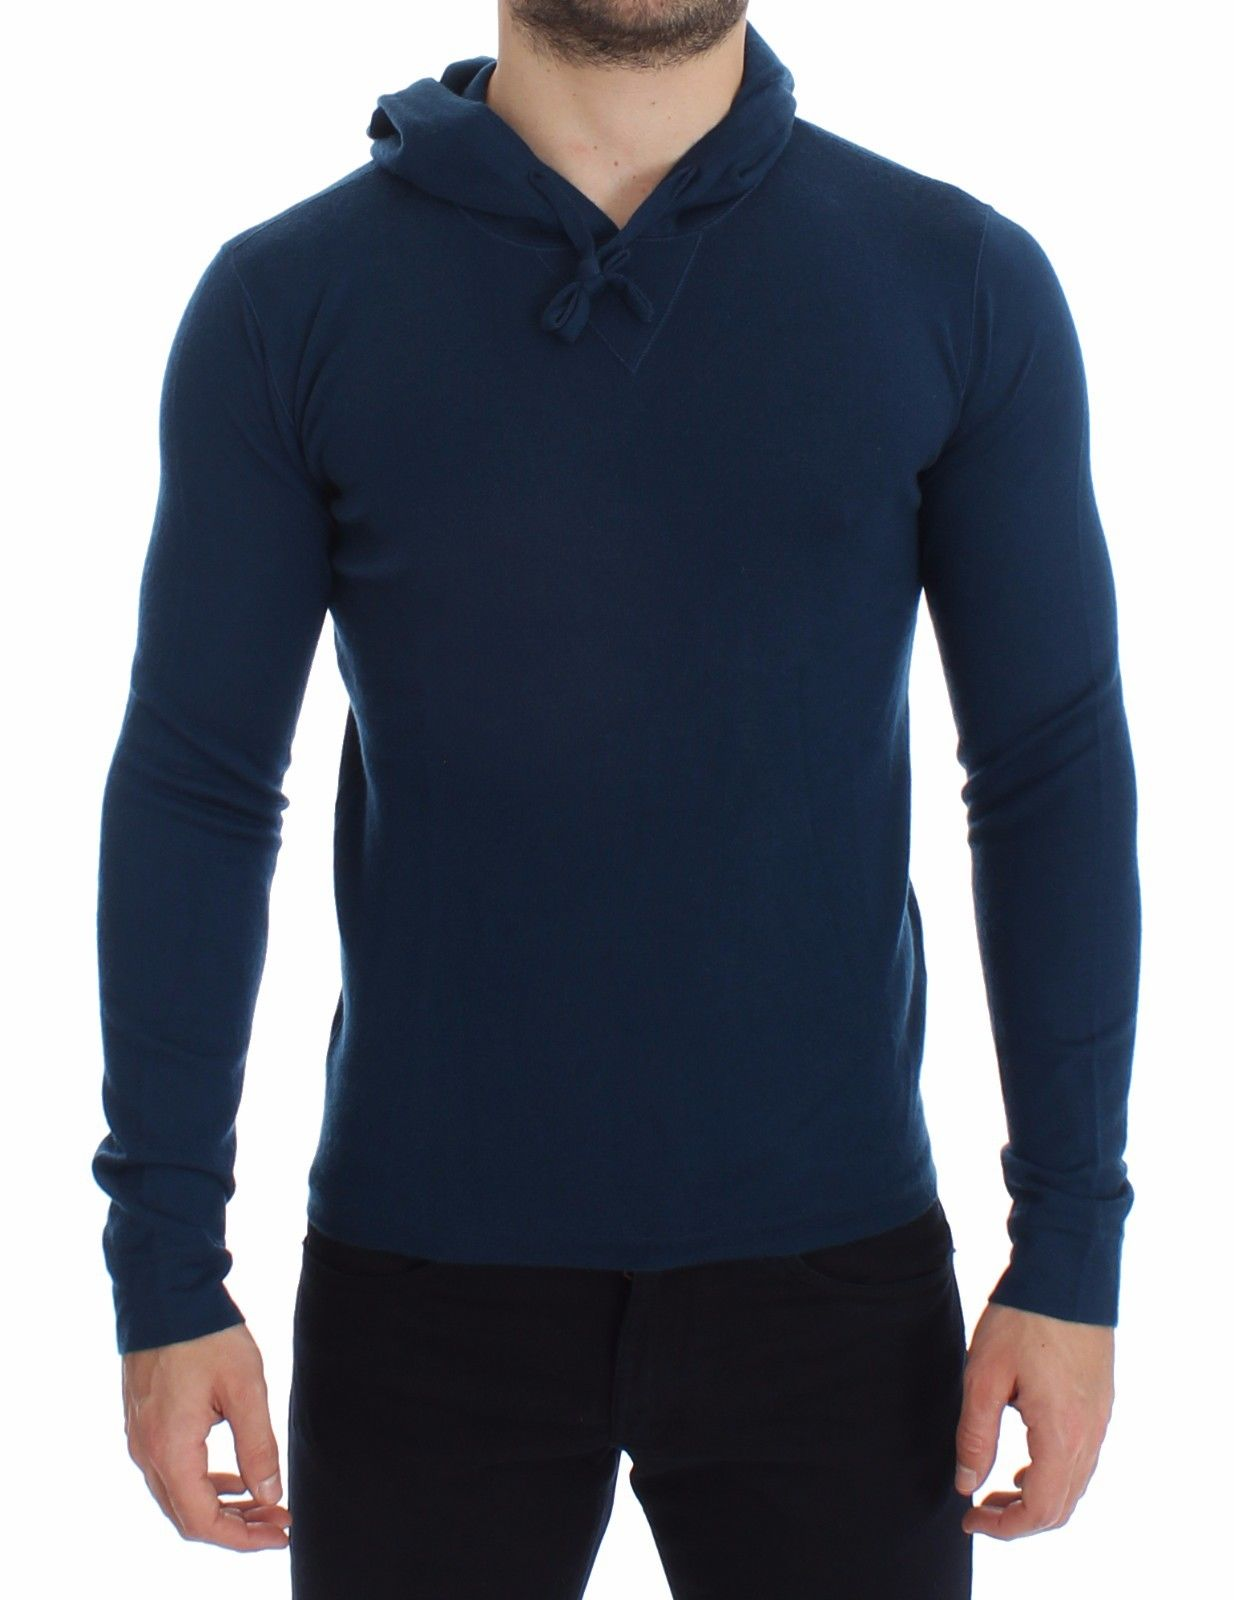 Dolce & Gabbana - Blue Cashmere Hooded Sweater Pullover Top